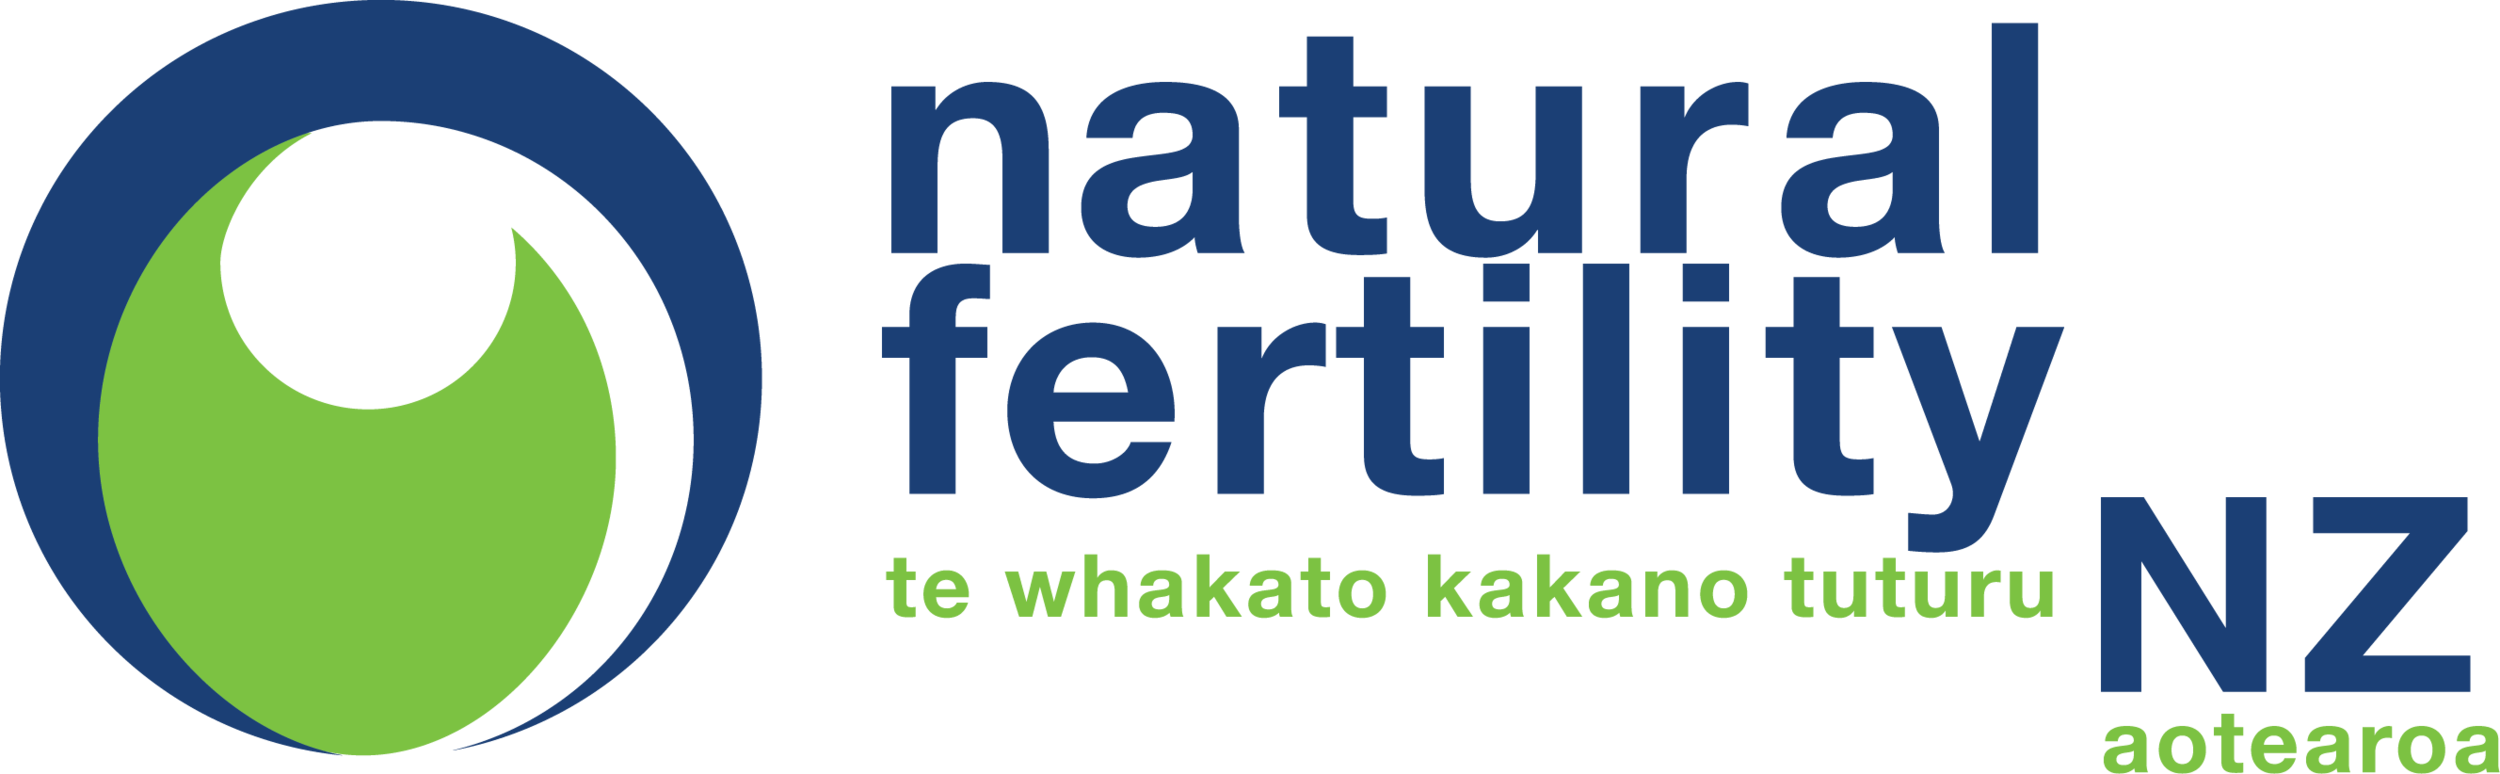 NaturalFertility_Logo_retracedWITHOUTBACKROUND.png